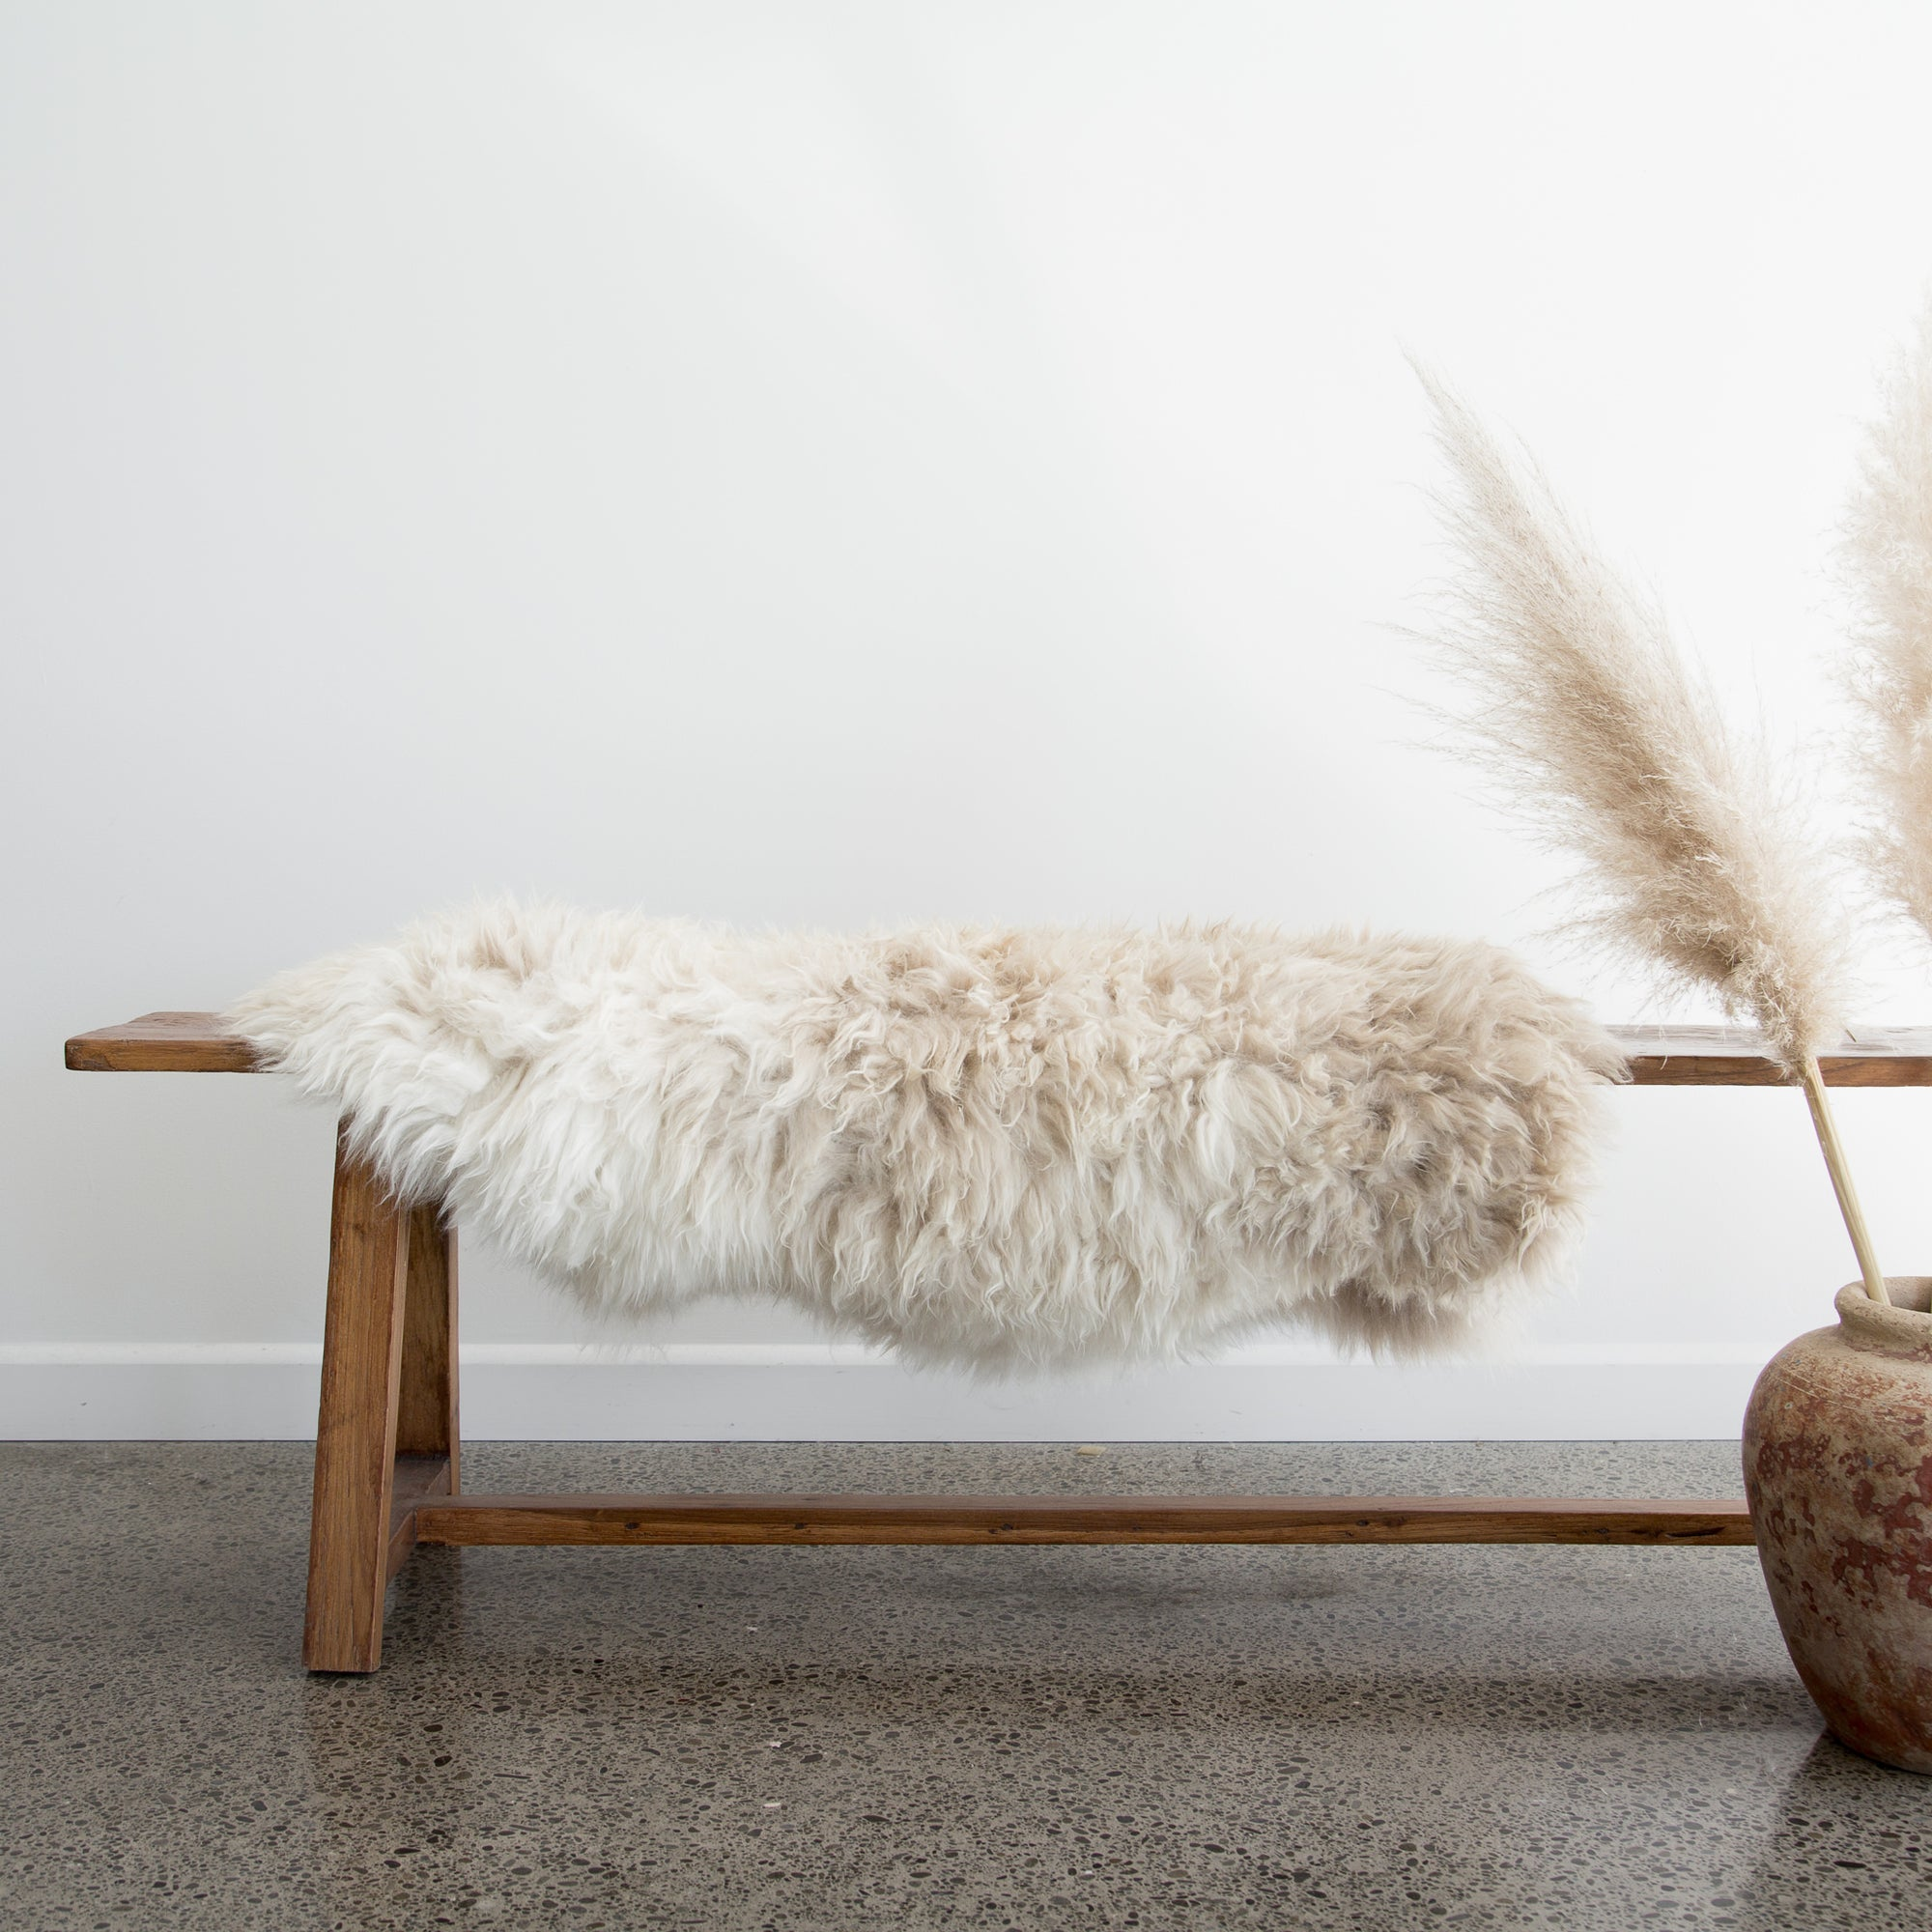 white sheepskin new zealand sheepskin rug throw corcovado furniture and interior design auckland christchurch wellington natural sustainable interiors